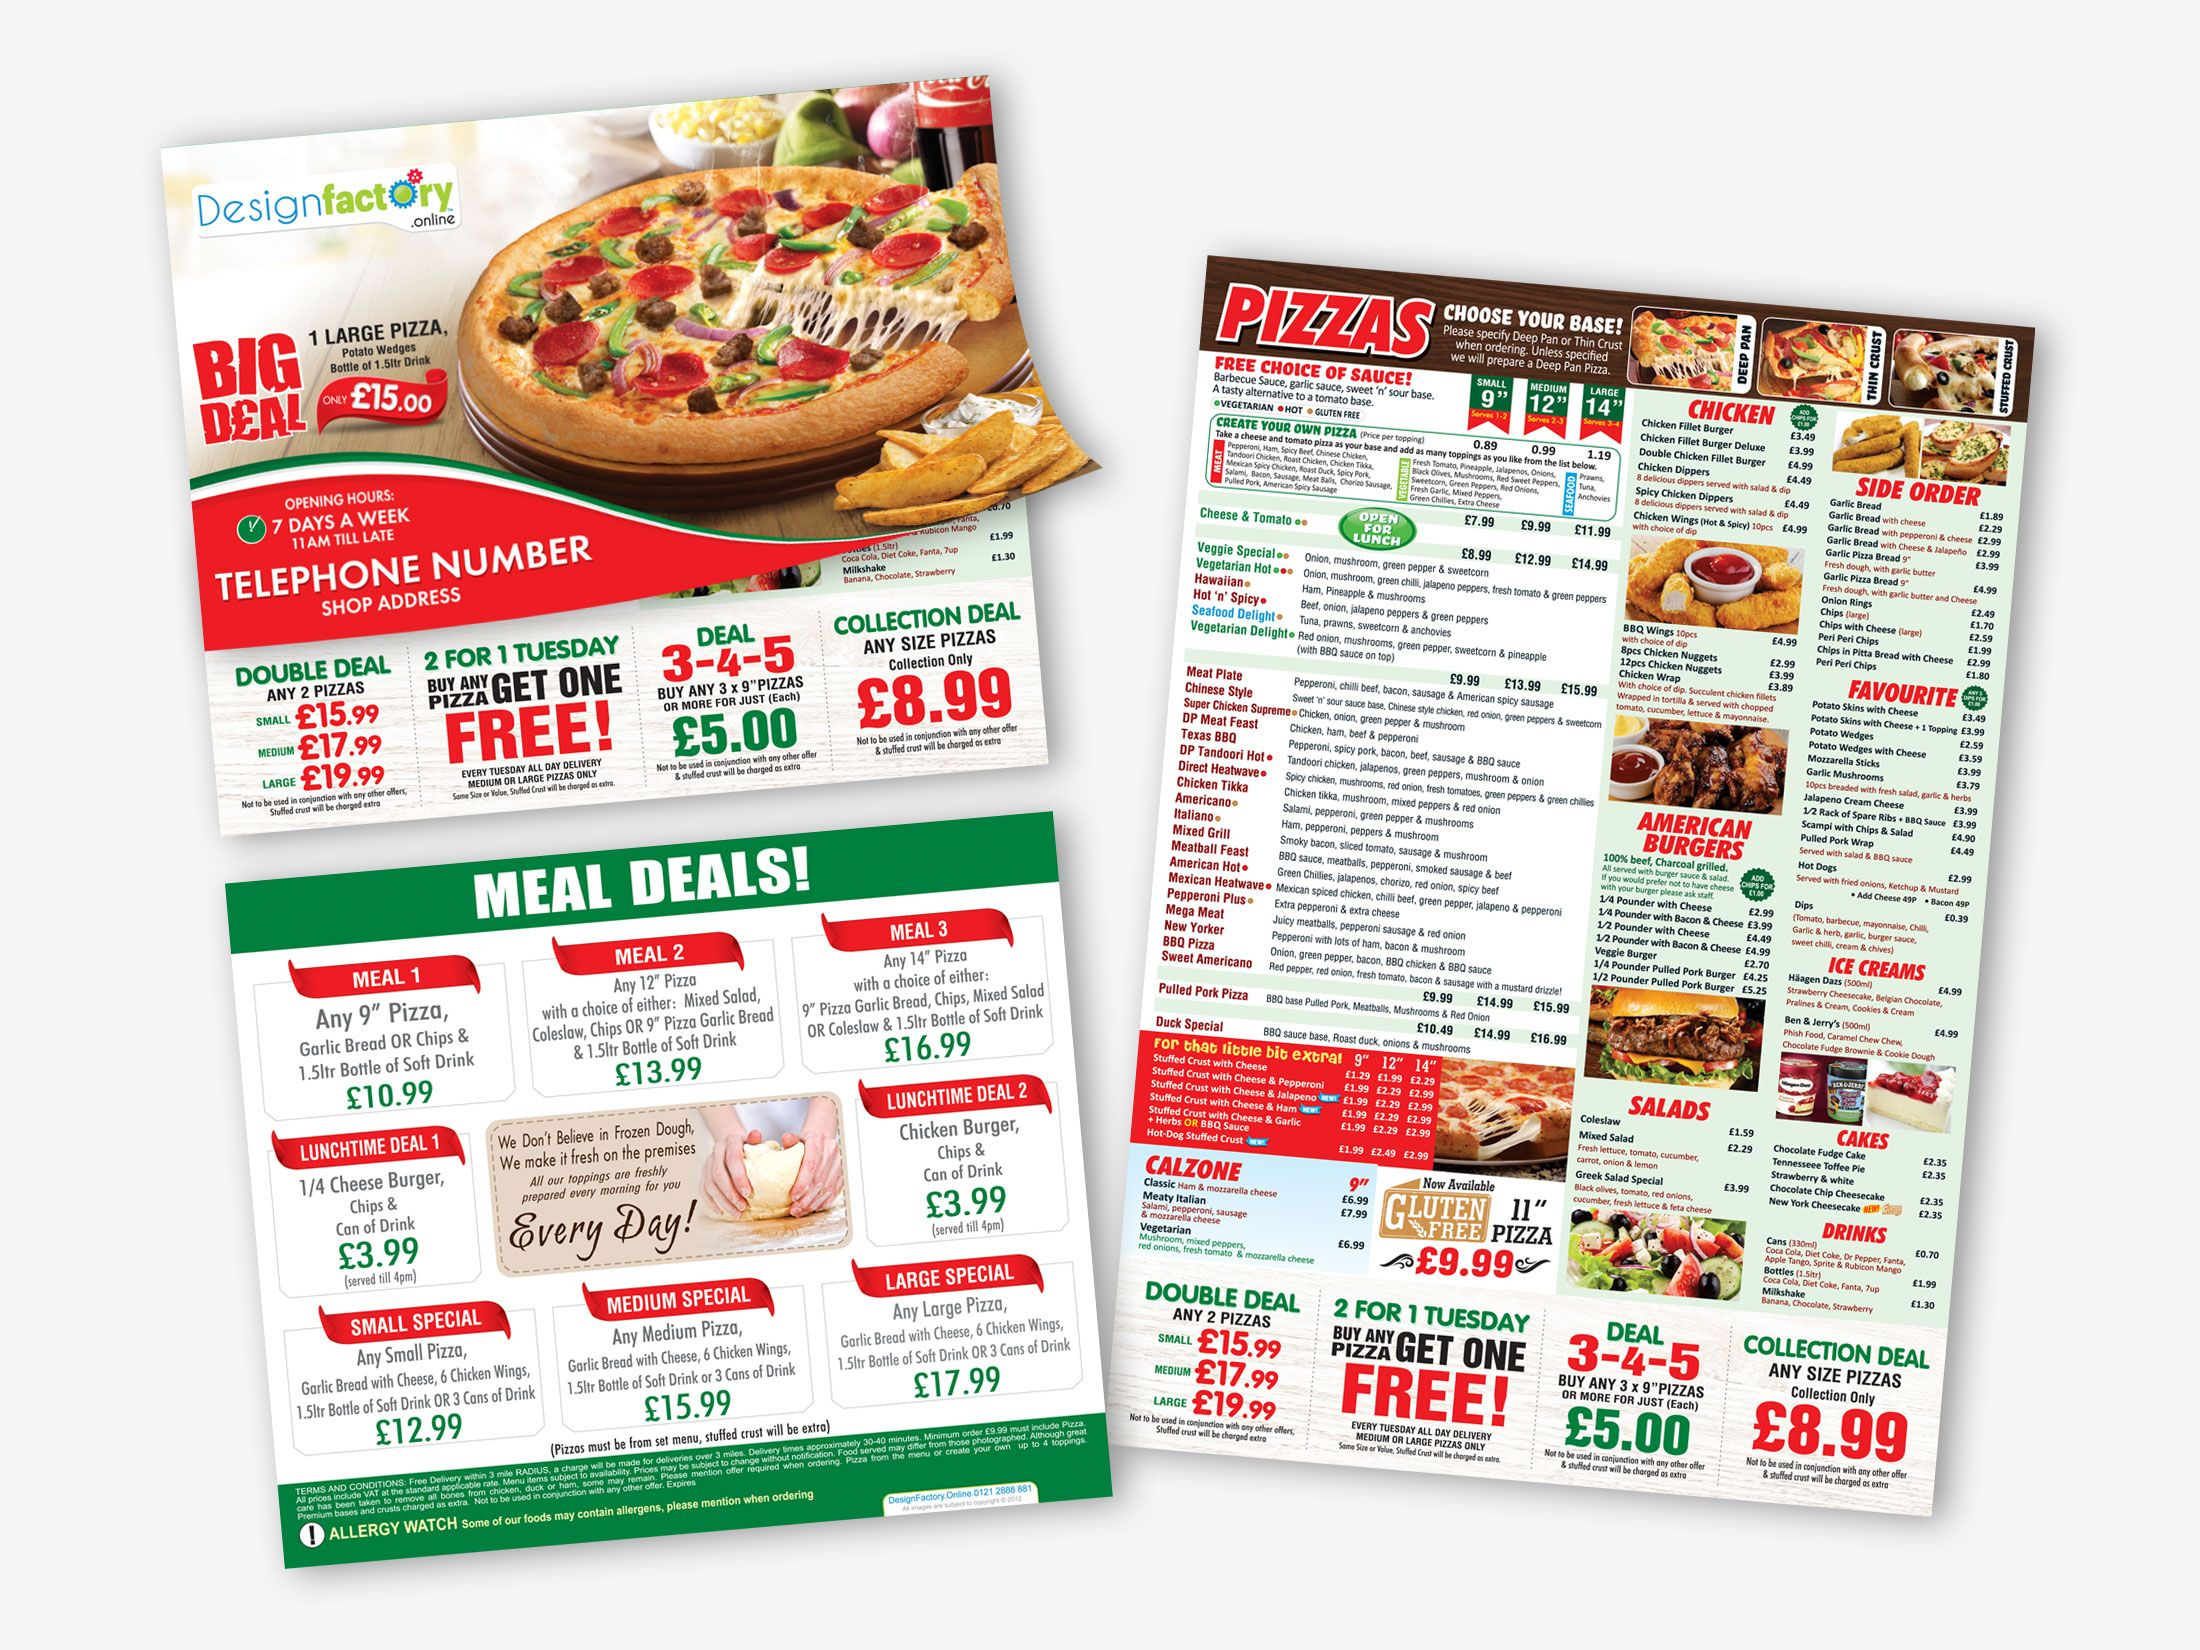 Direct Pizza Company Deanshanger Salad Cake Meal Deal